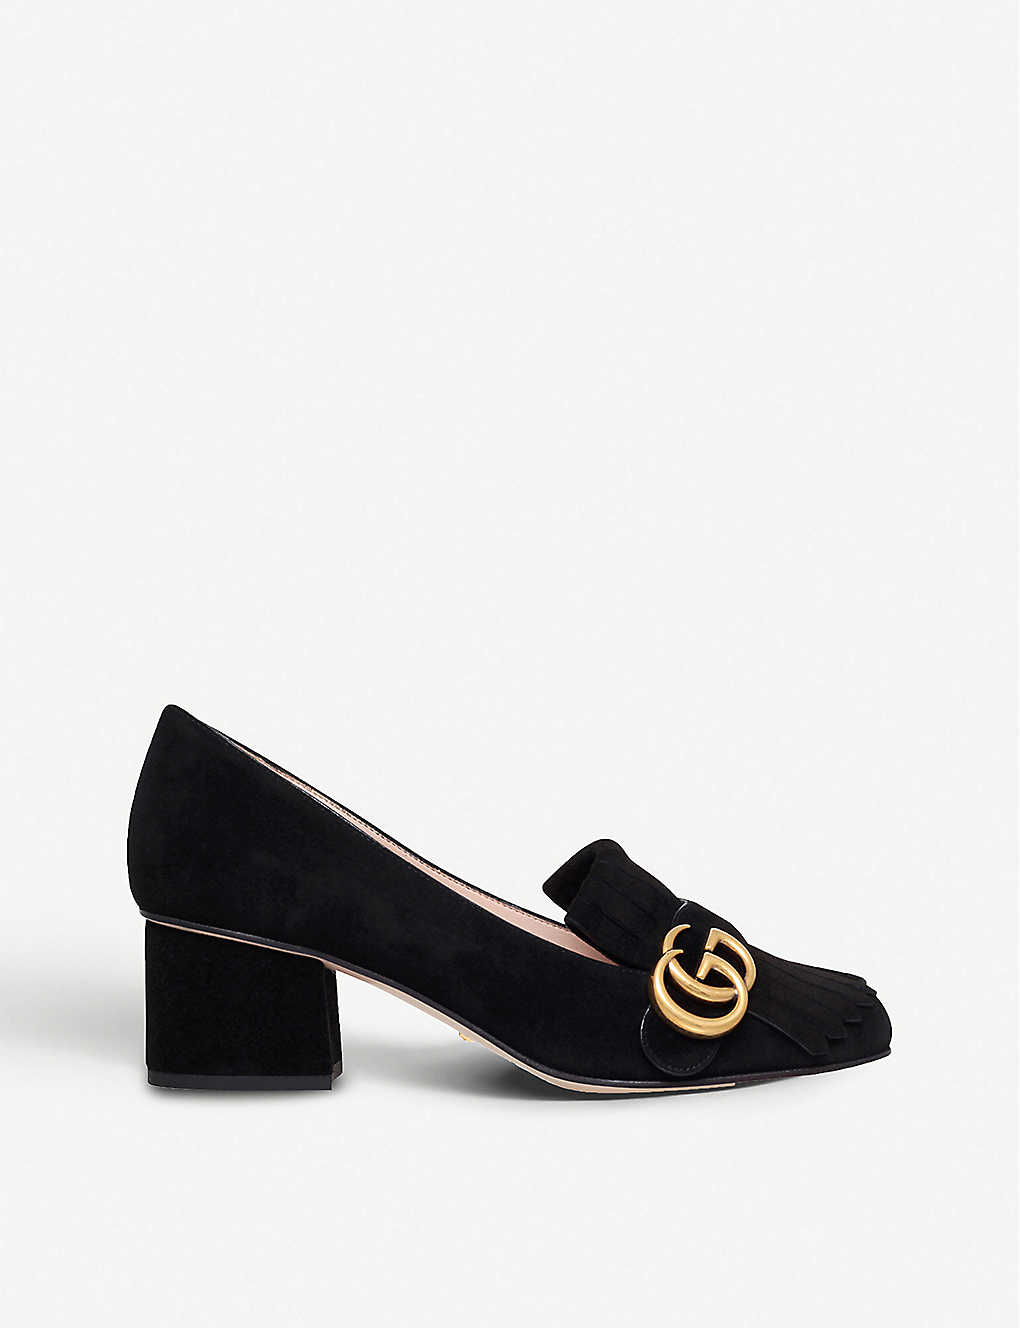 a503178e55 GUCCI - Marmont fringed suede loafers | Selfridges.com